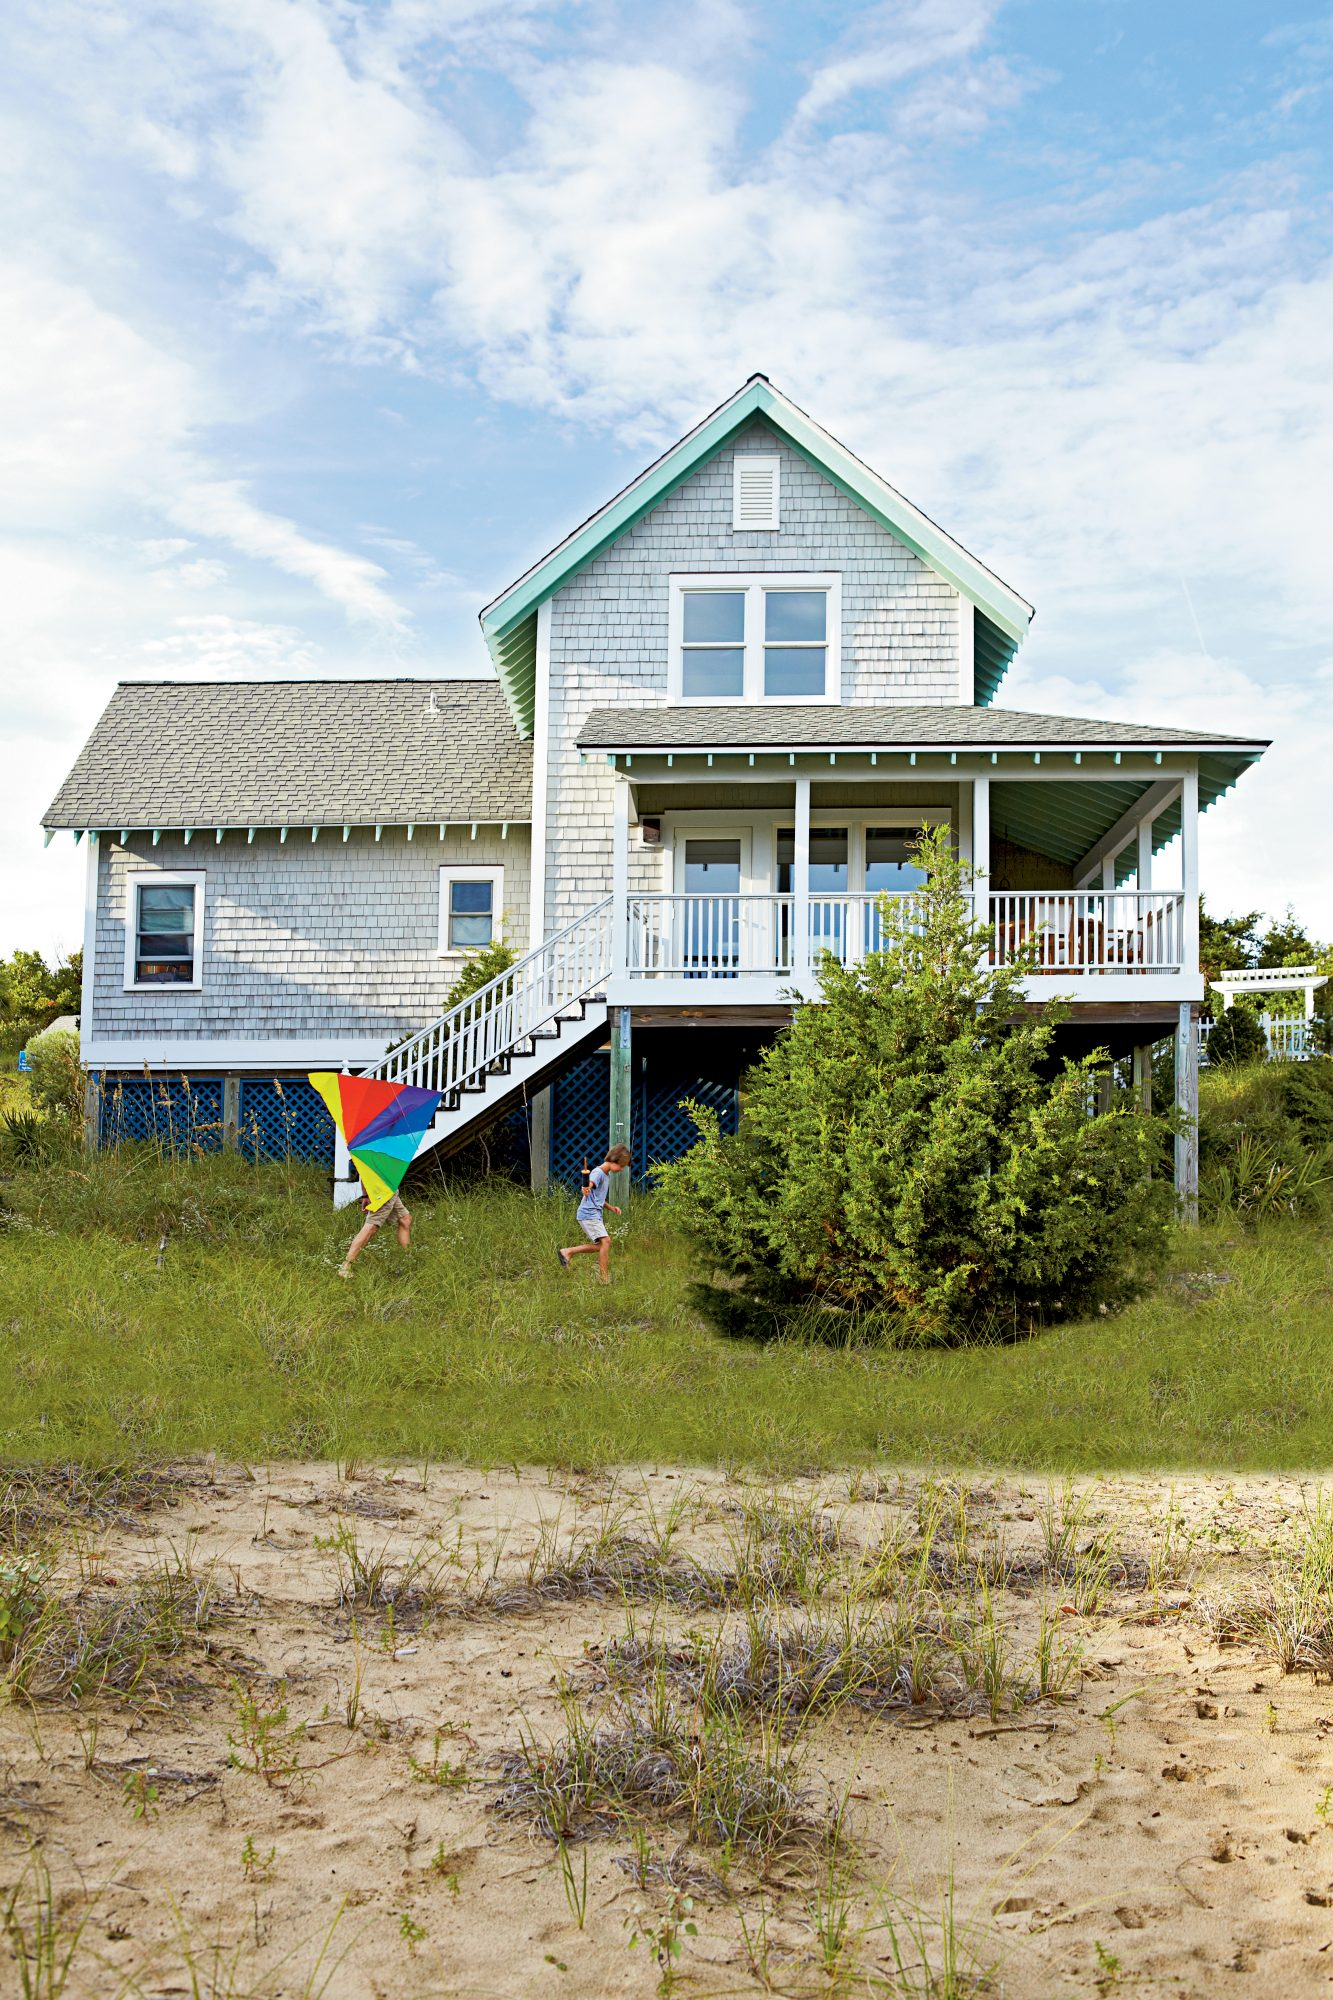 The Style: This simple, shingled bungalow off the coast of Southport, North Carolina, features soft gray cedar shakes and a large wraparound porch acts as an outdoor room.